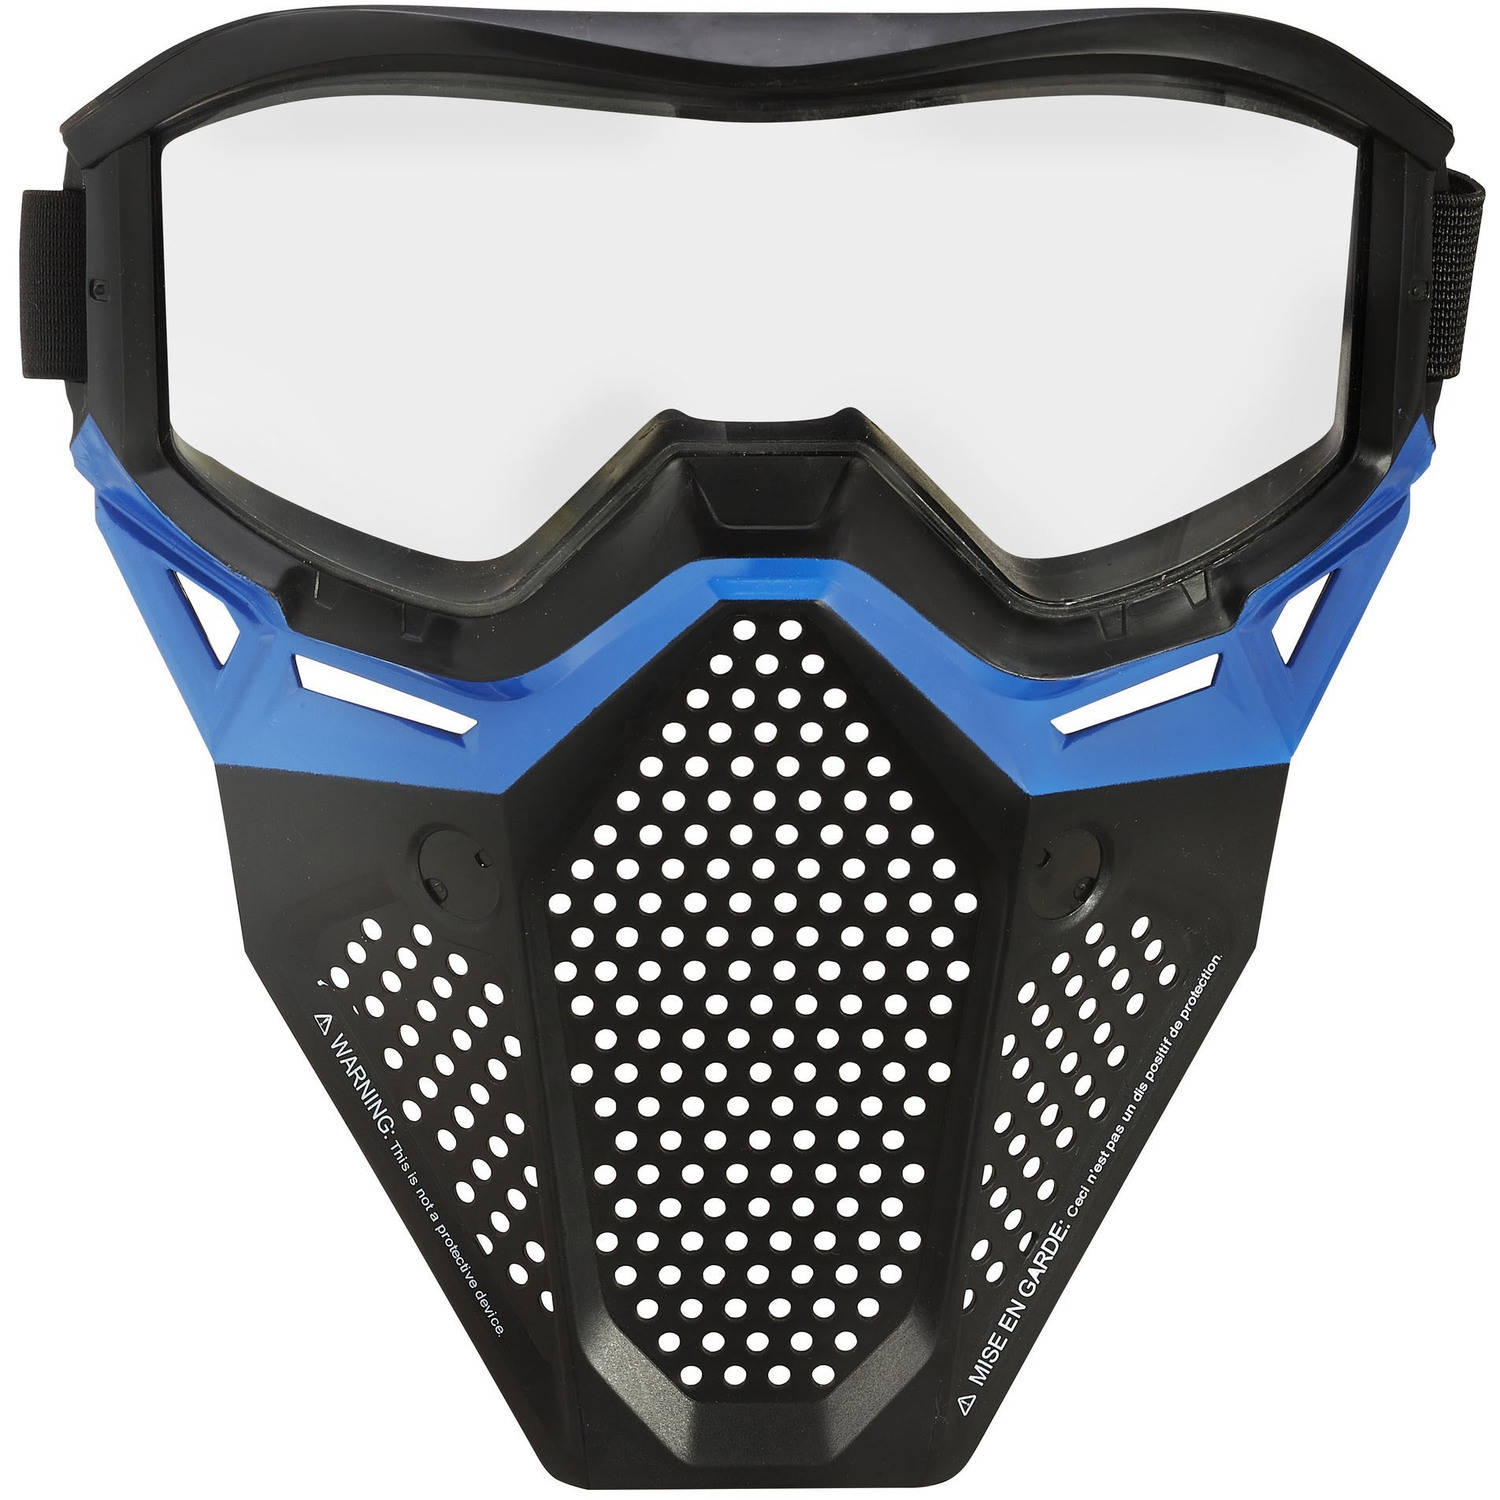 Nerf Rival Face Mask (Blue) by Hasbro